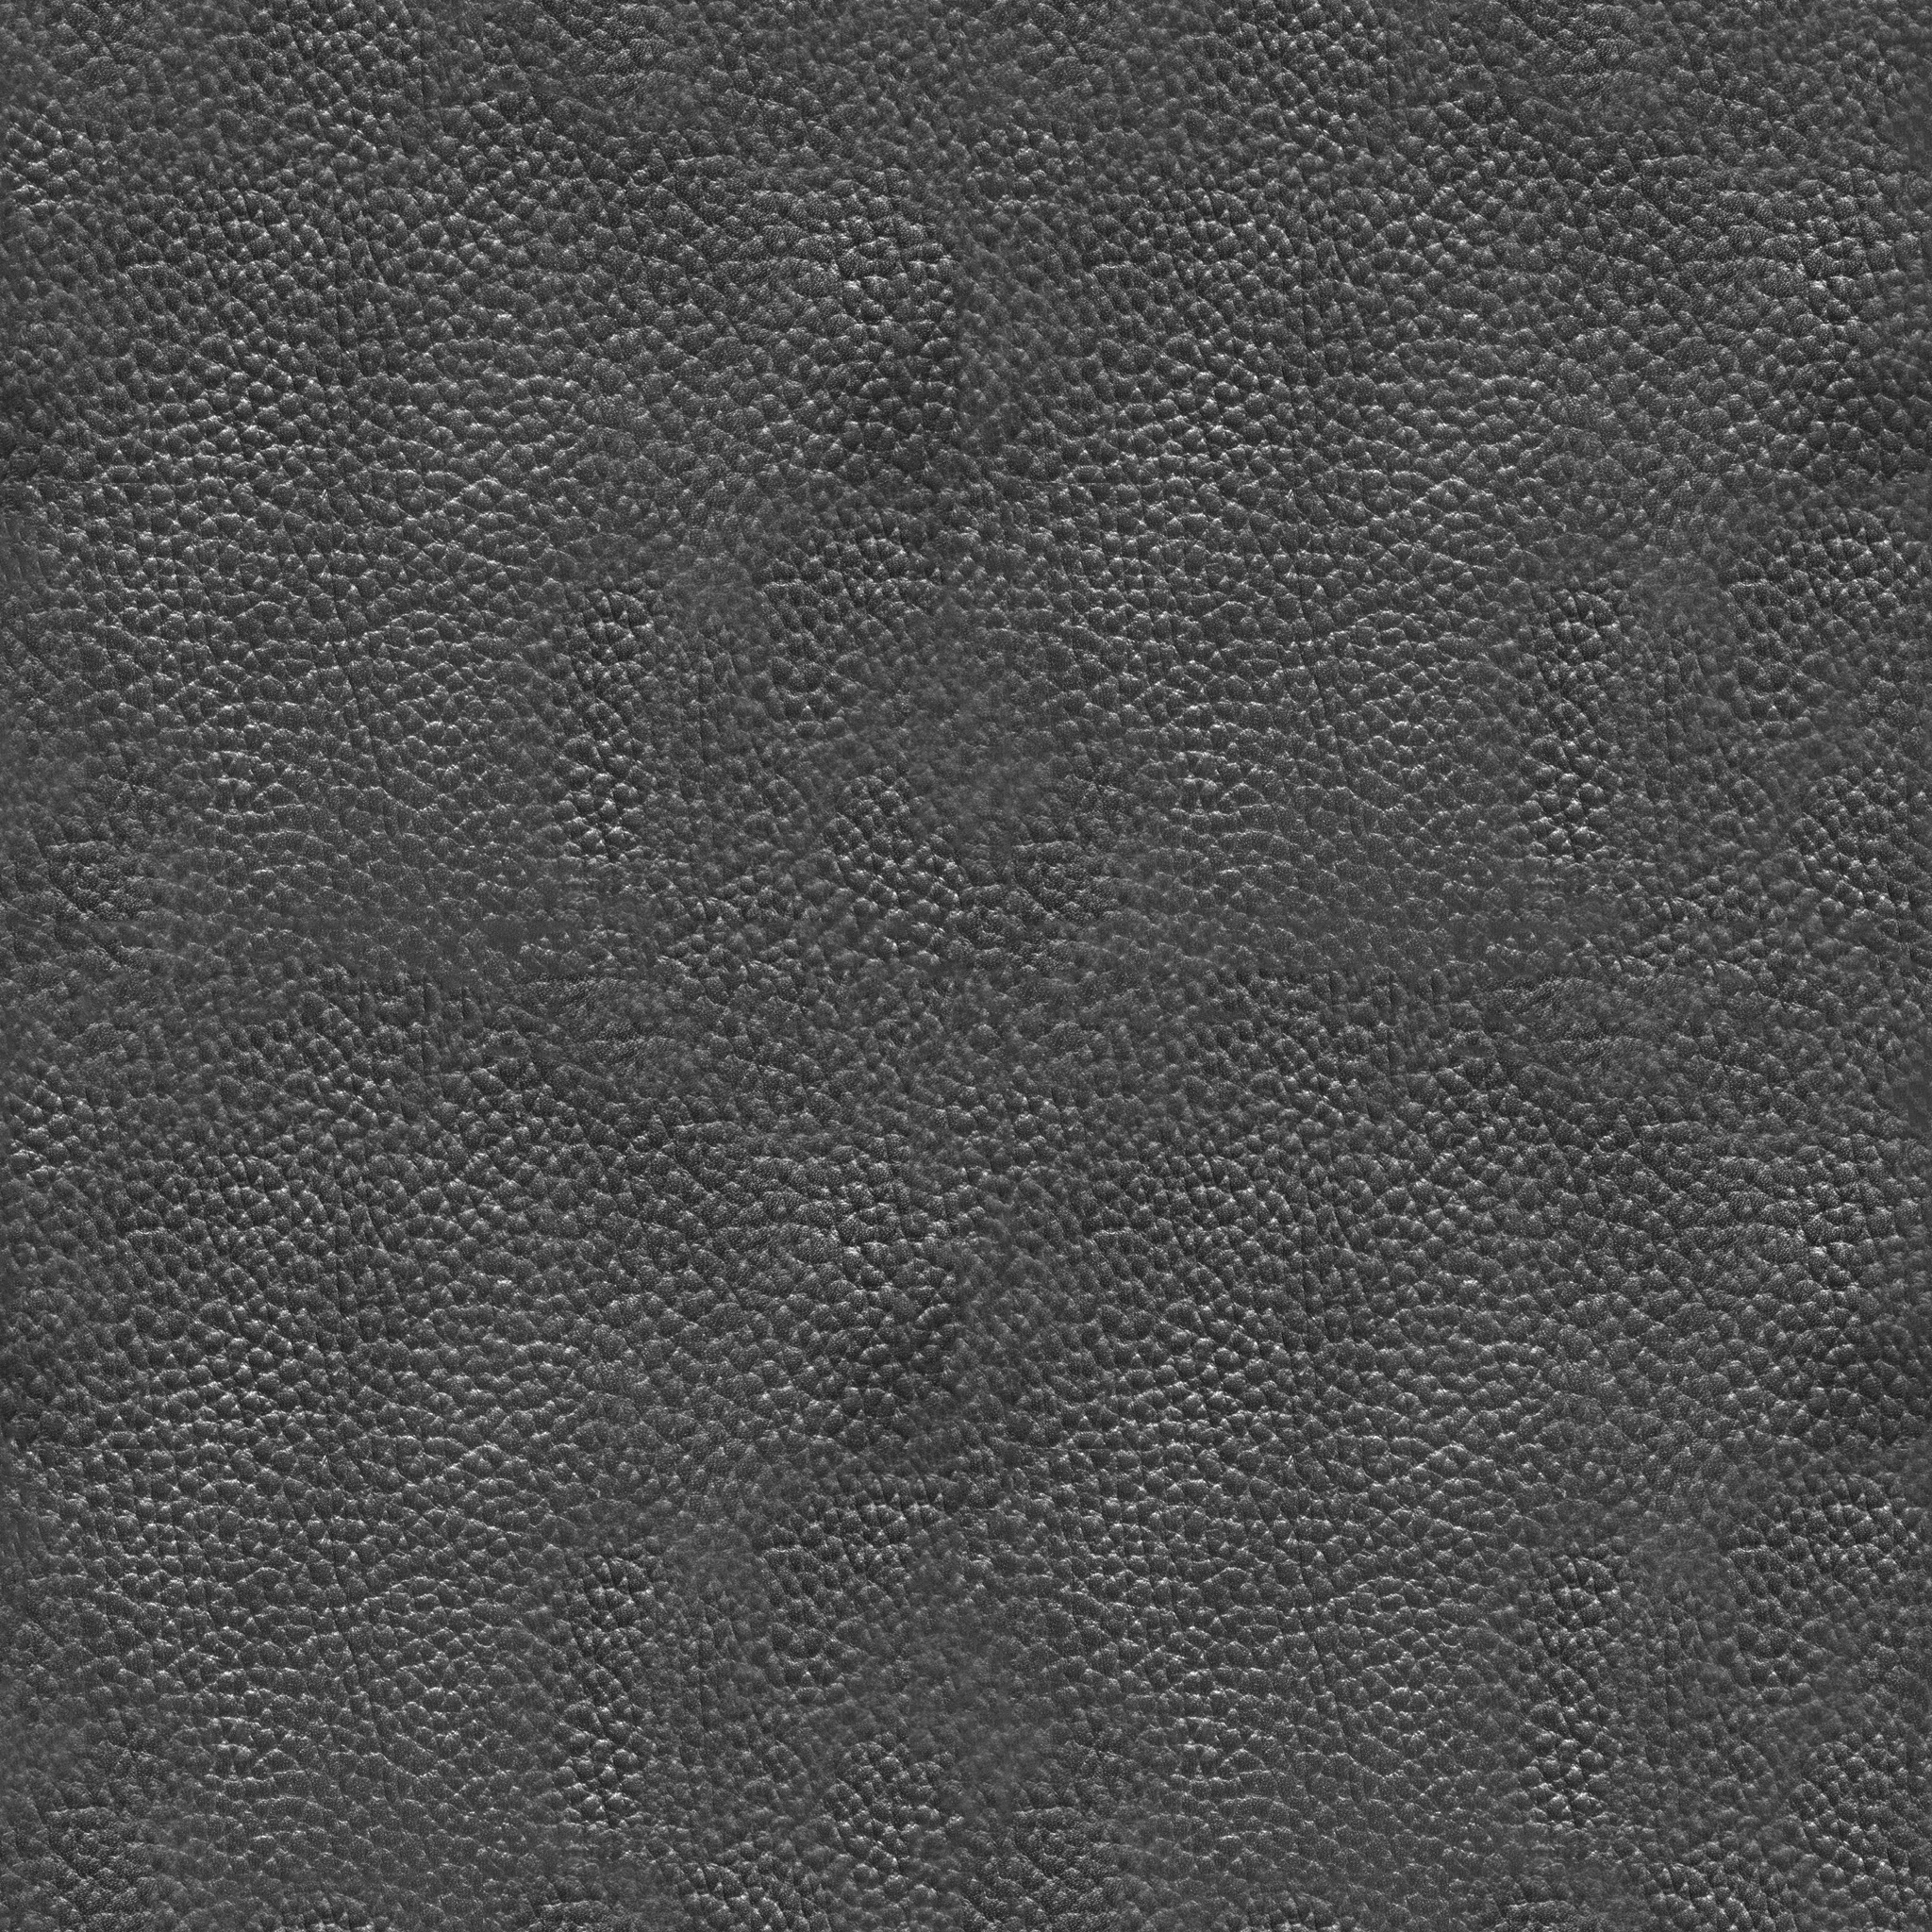 Power Wallpaper Hd Black Leather Download Royalty Free Texture